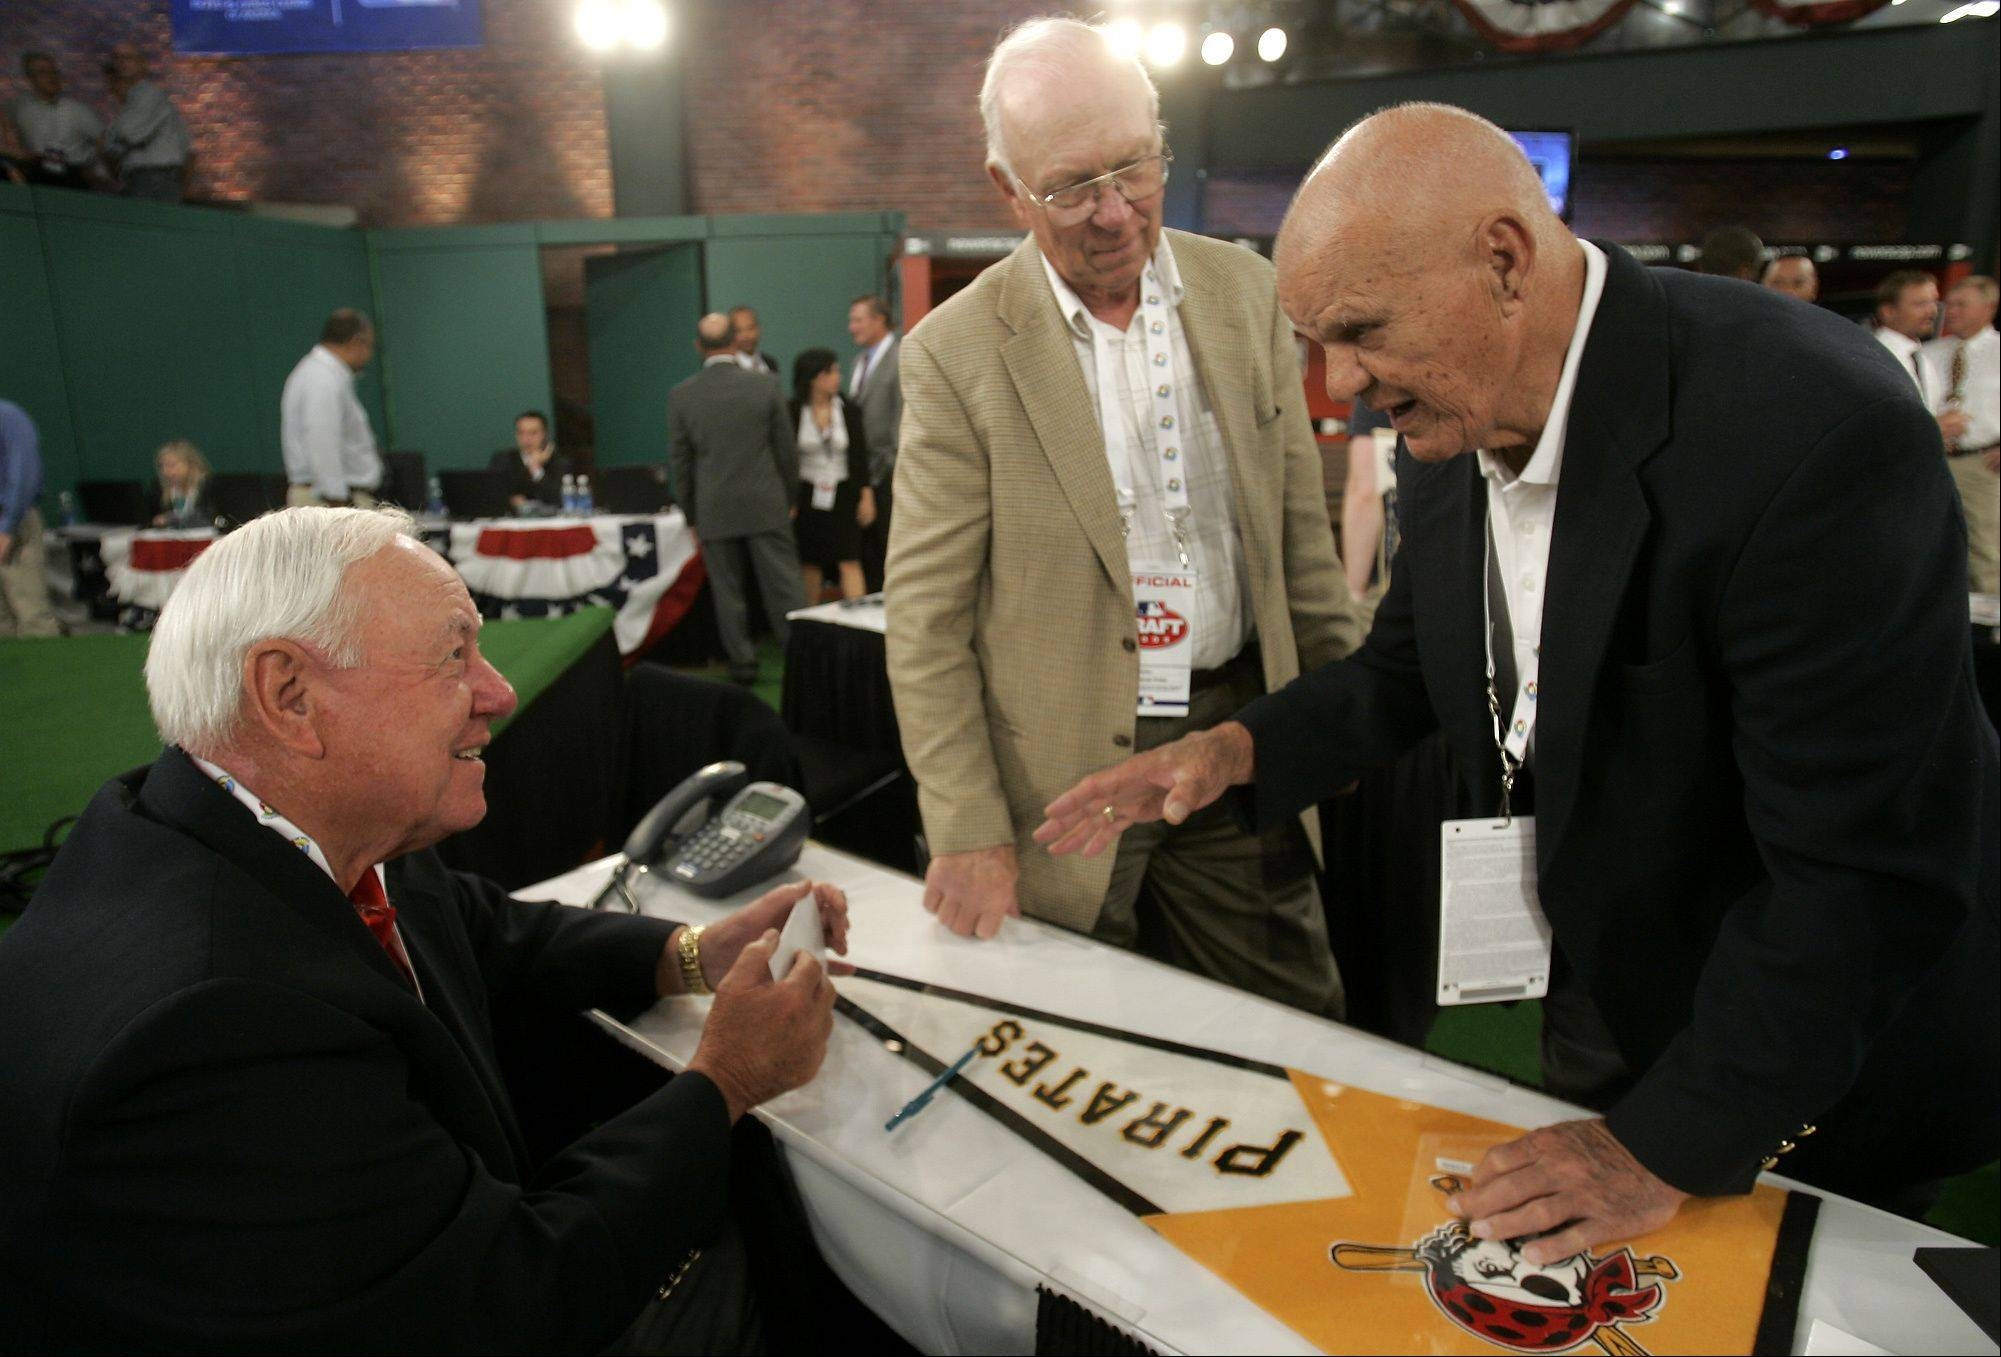 Hall of Fame member Bill Mazeroski, left, talks with former Pittsburgh Pirates manager Bill Virdon and former New York Yankee Moose Skowron before the baseball draft in Secaucus, N.J., Tuesday, June 9, 2009.